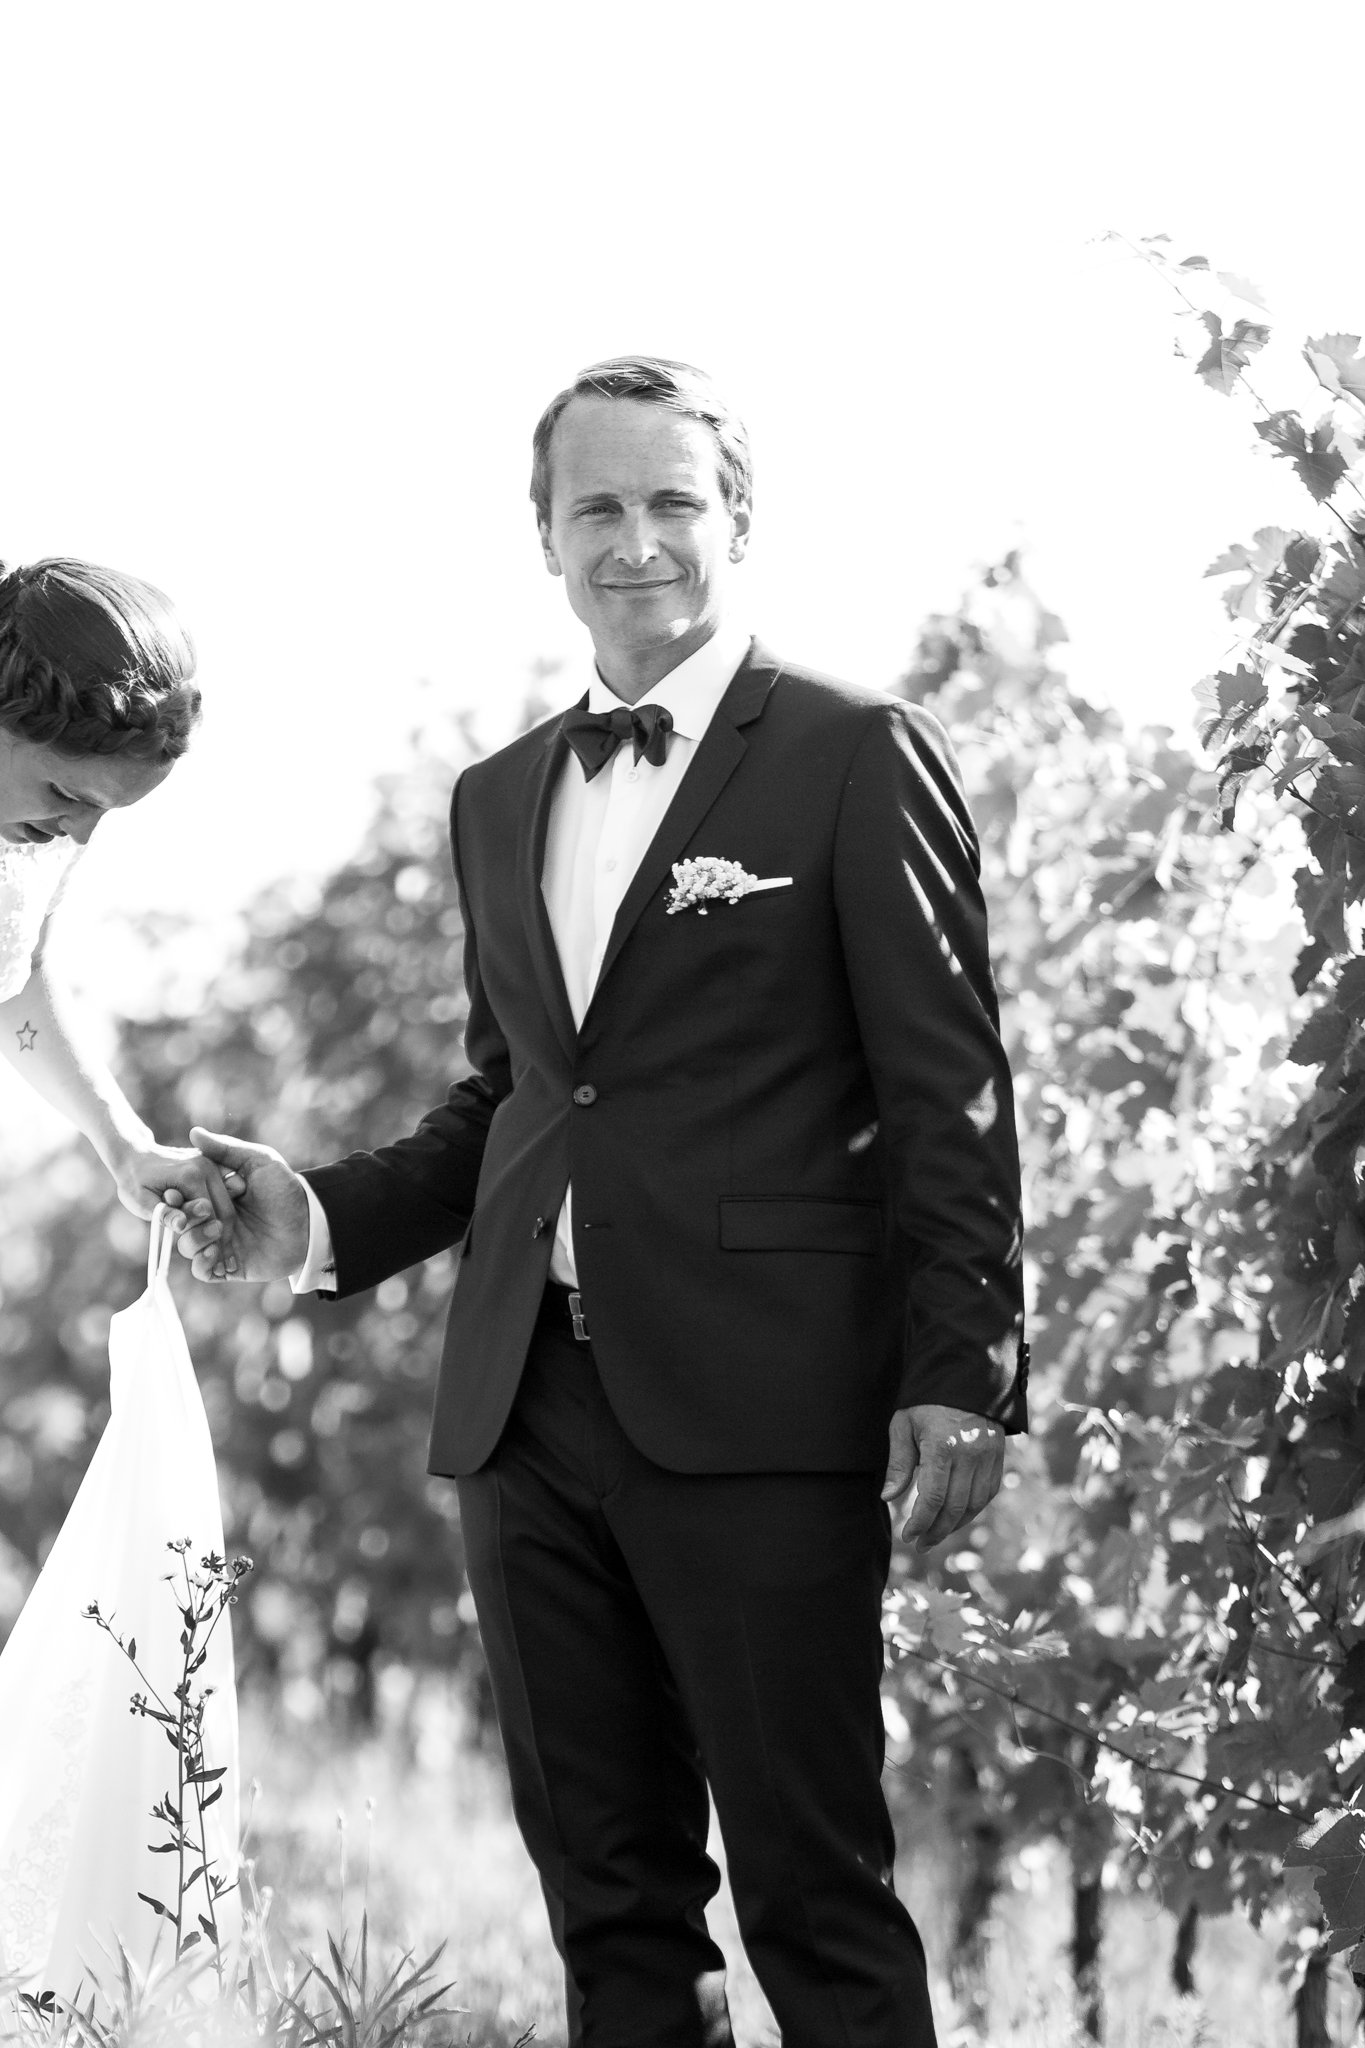 Cathrine+Andreas_Bryllup-127